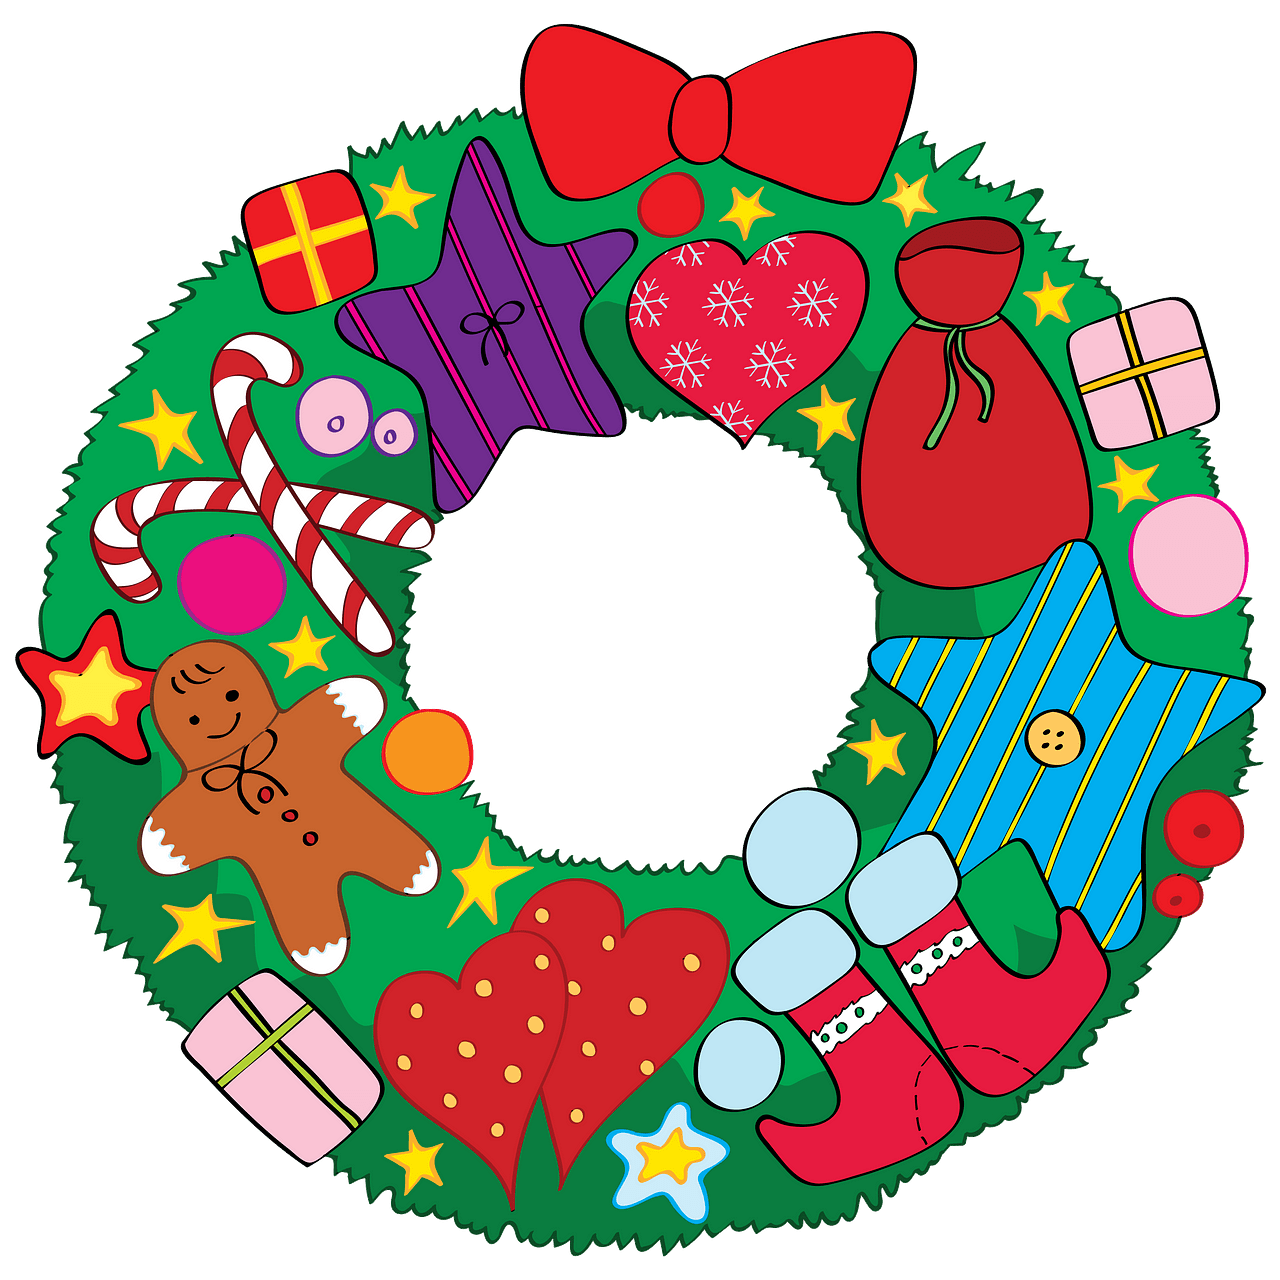 Christmas wreath clipart. Free download..